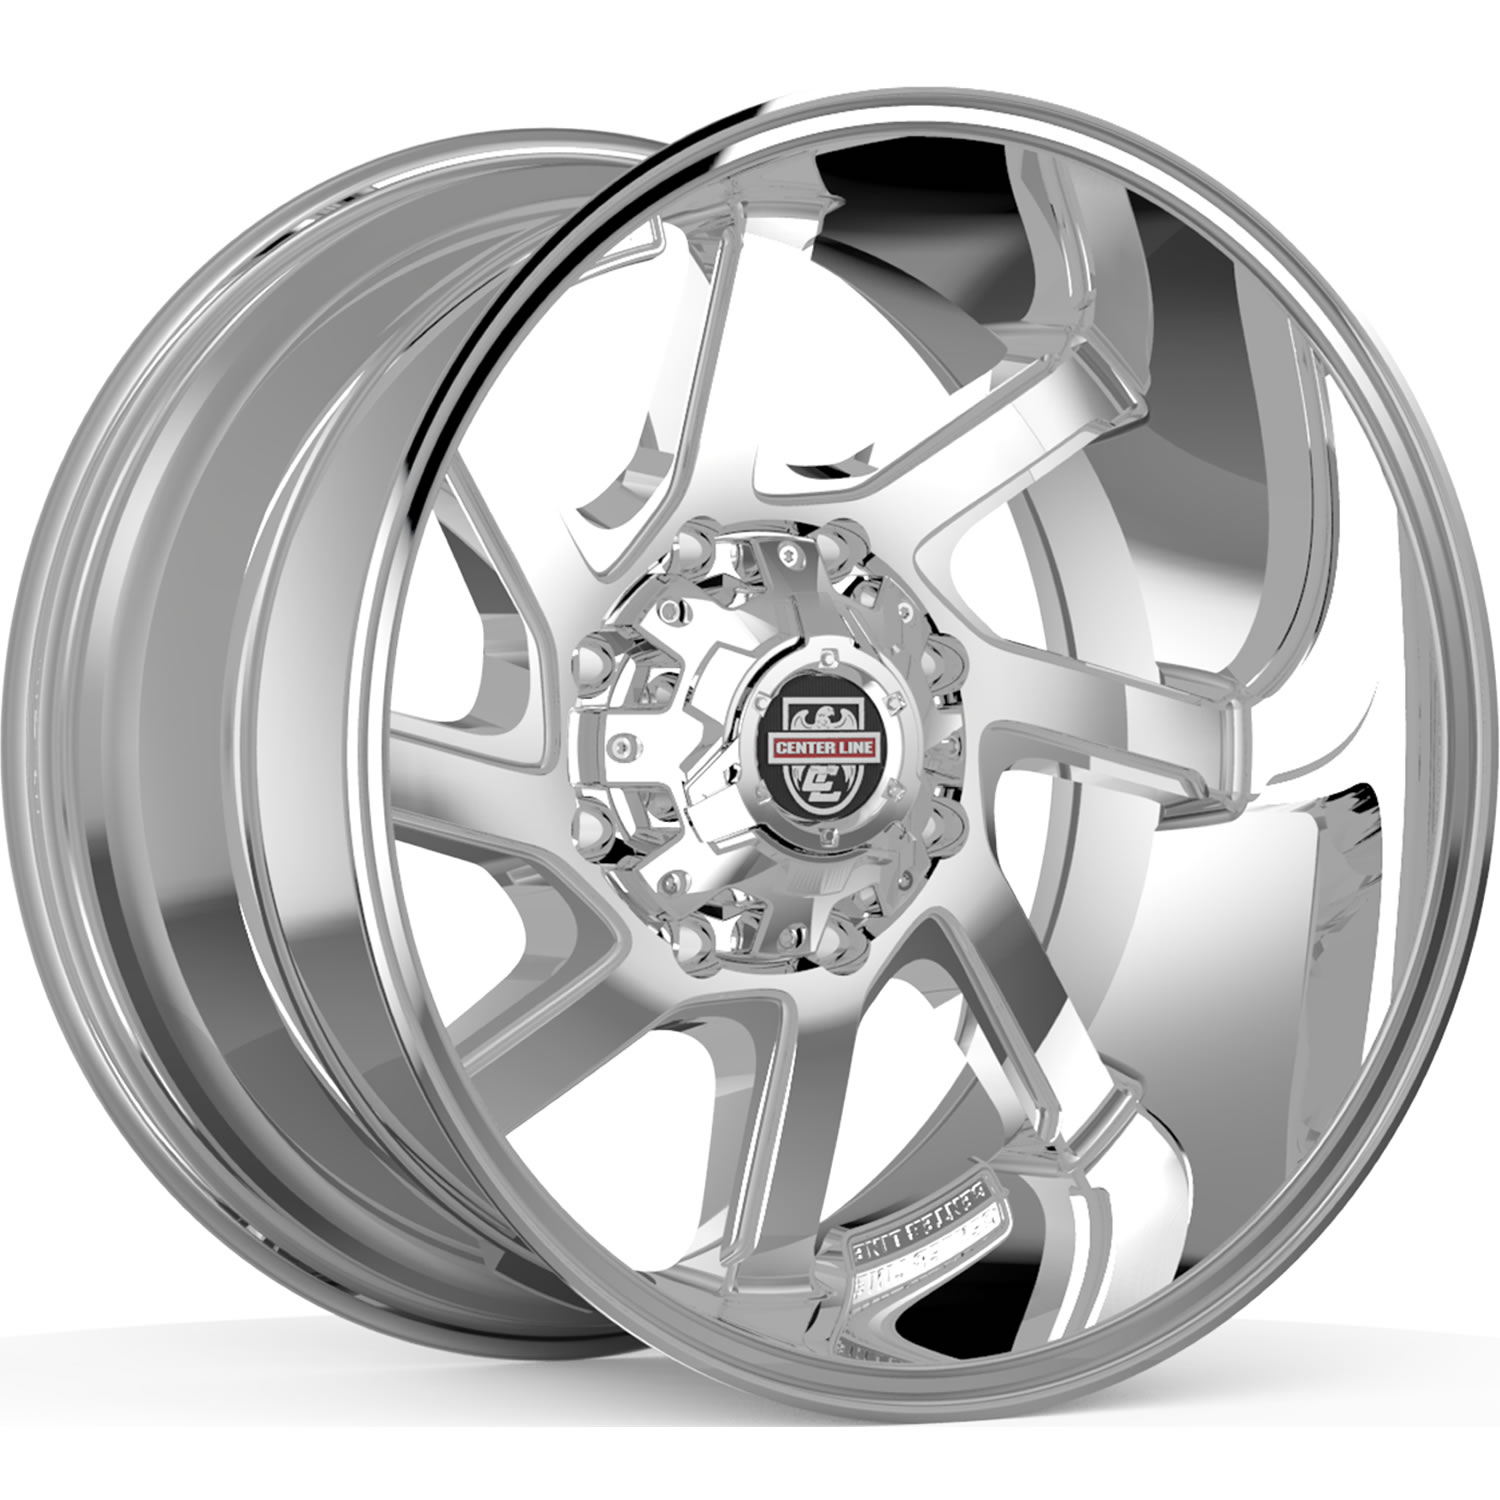 Centerline Eliminator 20x9 Pvd Chrome Wheels For Sale 838v Custom Offsets